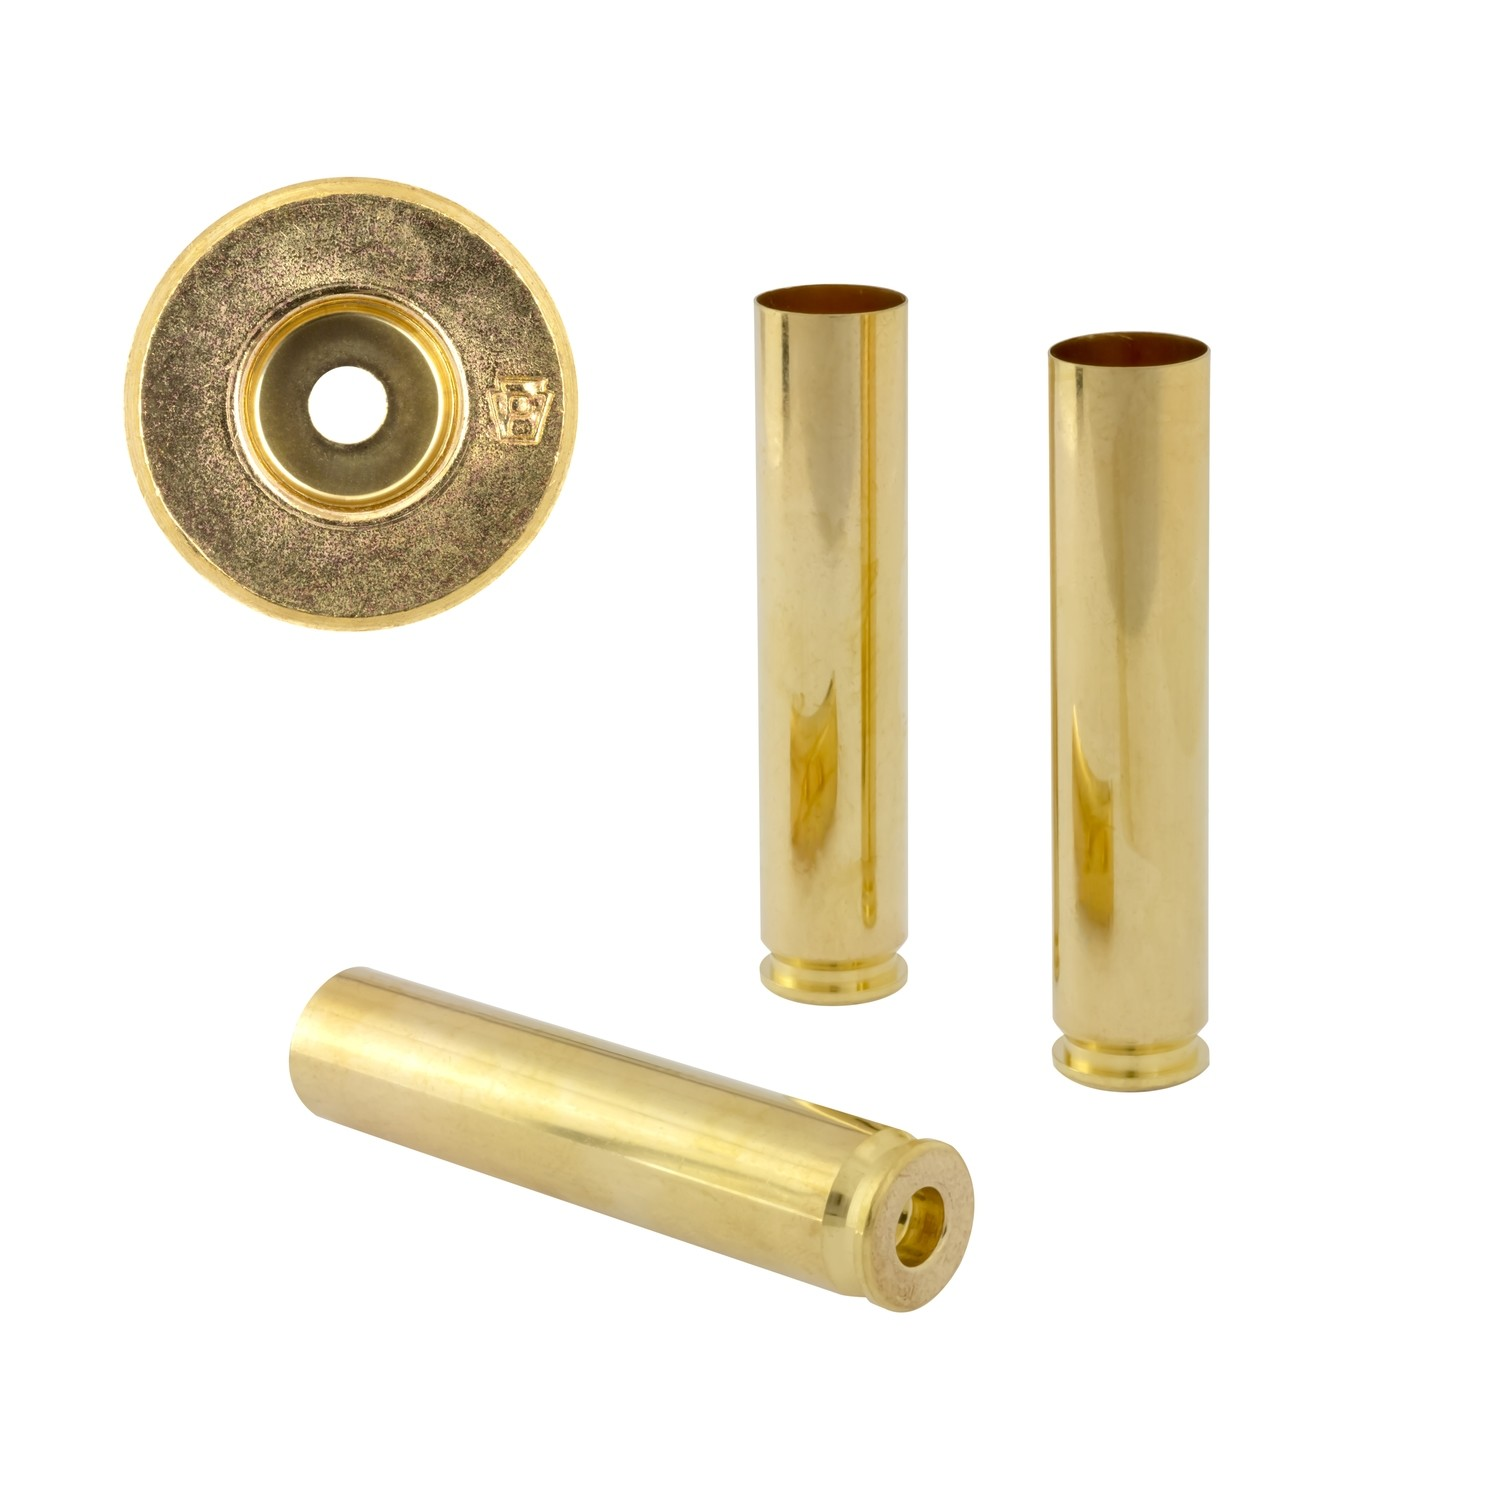 .468 x 2.175 SRP (w/ Creedmoor Shoulder Line) Small Primer - Wildcat Tubes - Box of 50